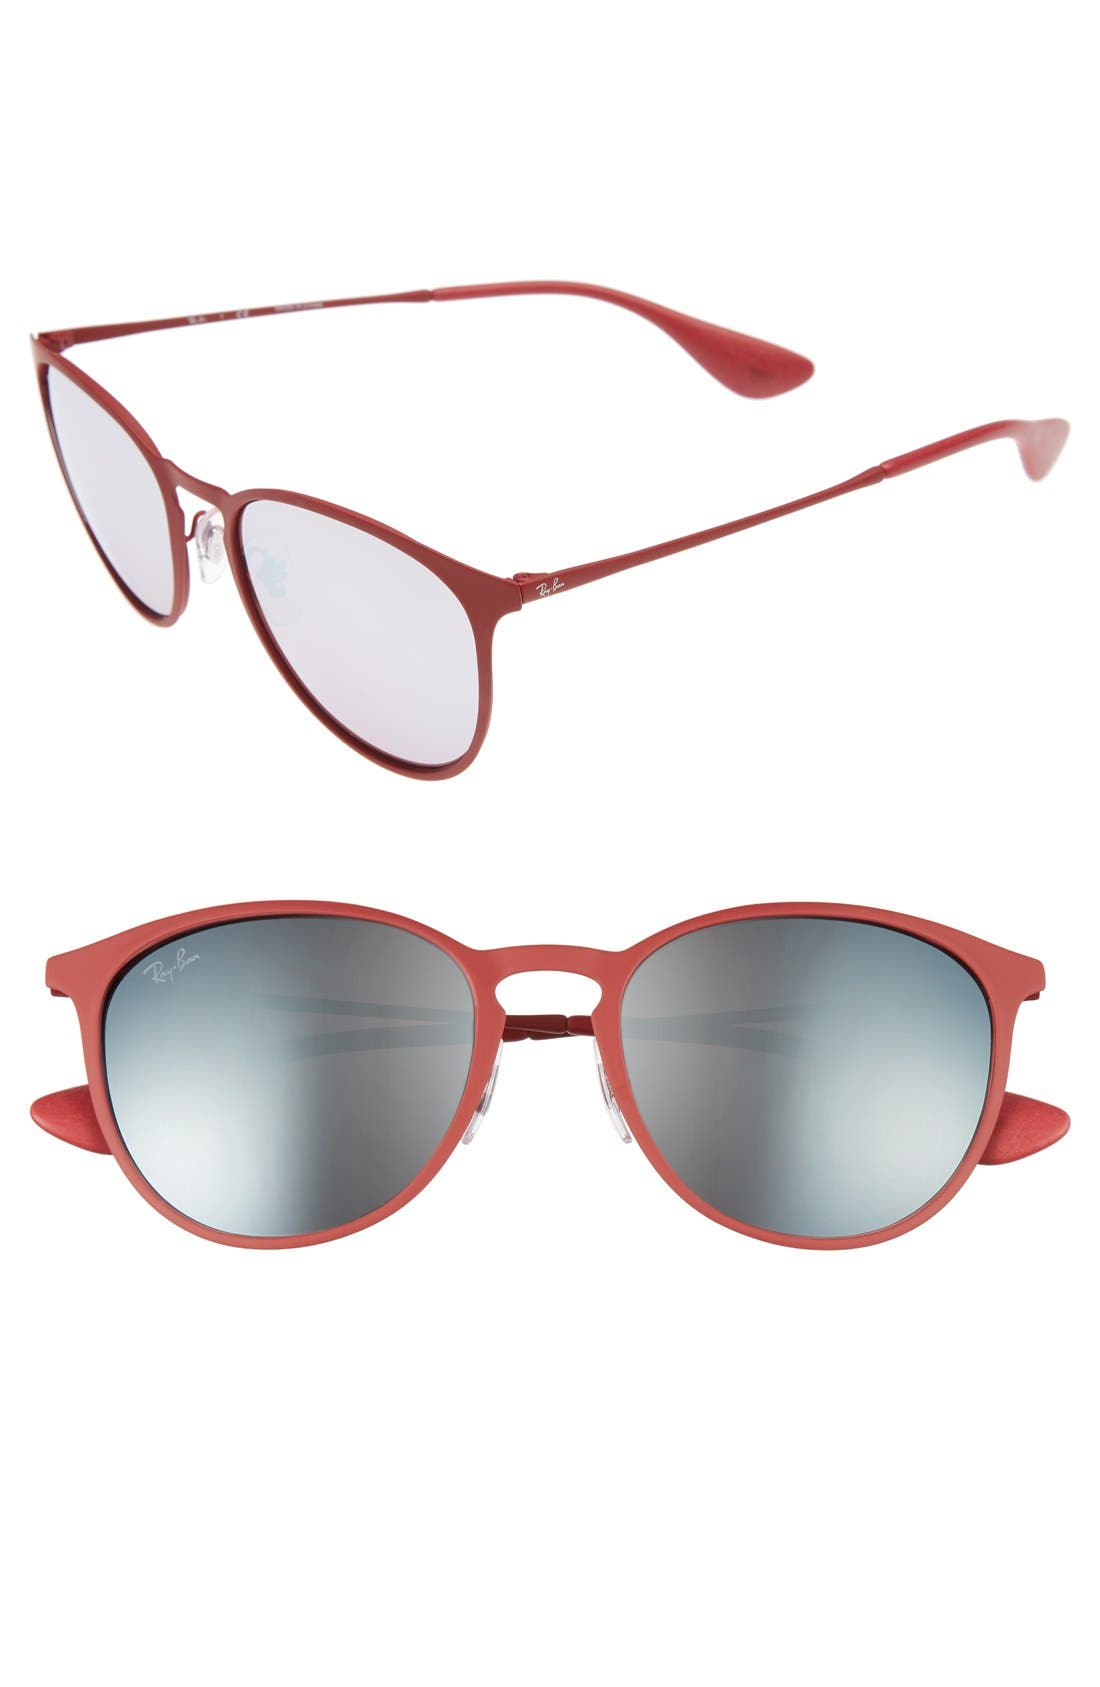 Highstreet 54mm Sunglasses,                             Main thumbnail 1, color,                             Bordeaux